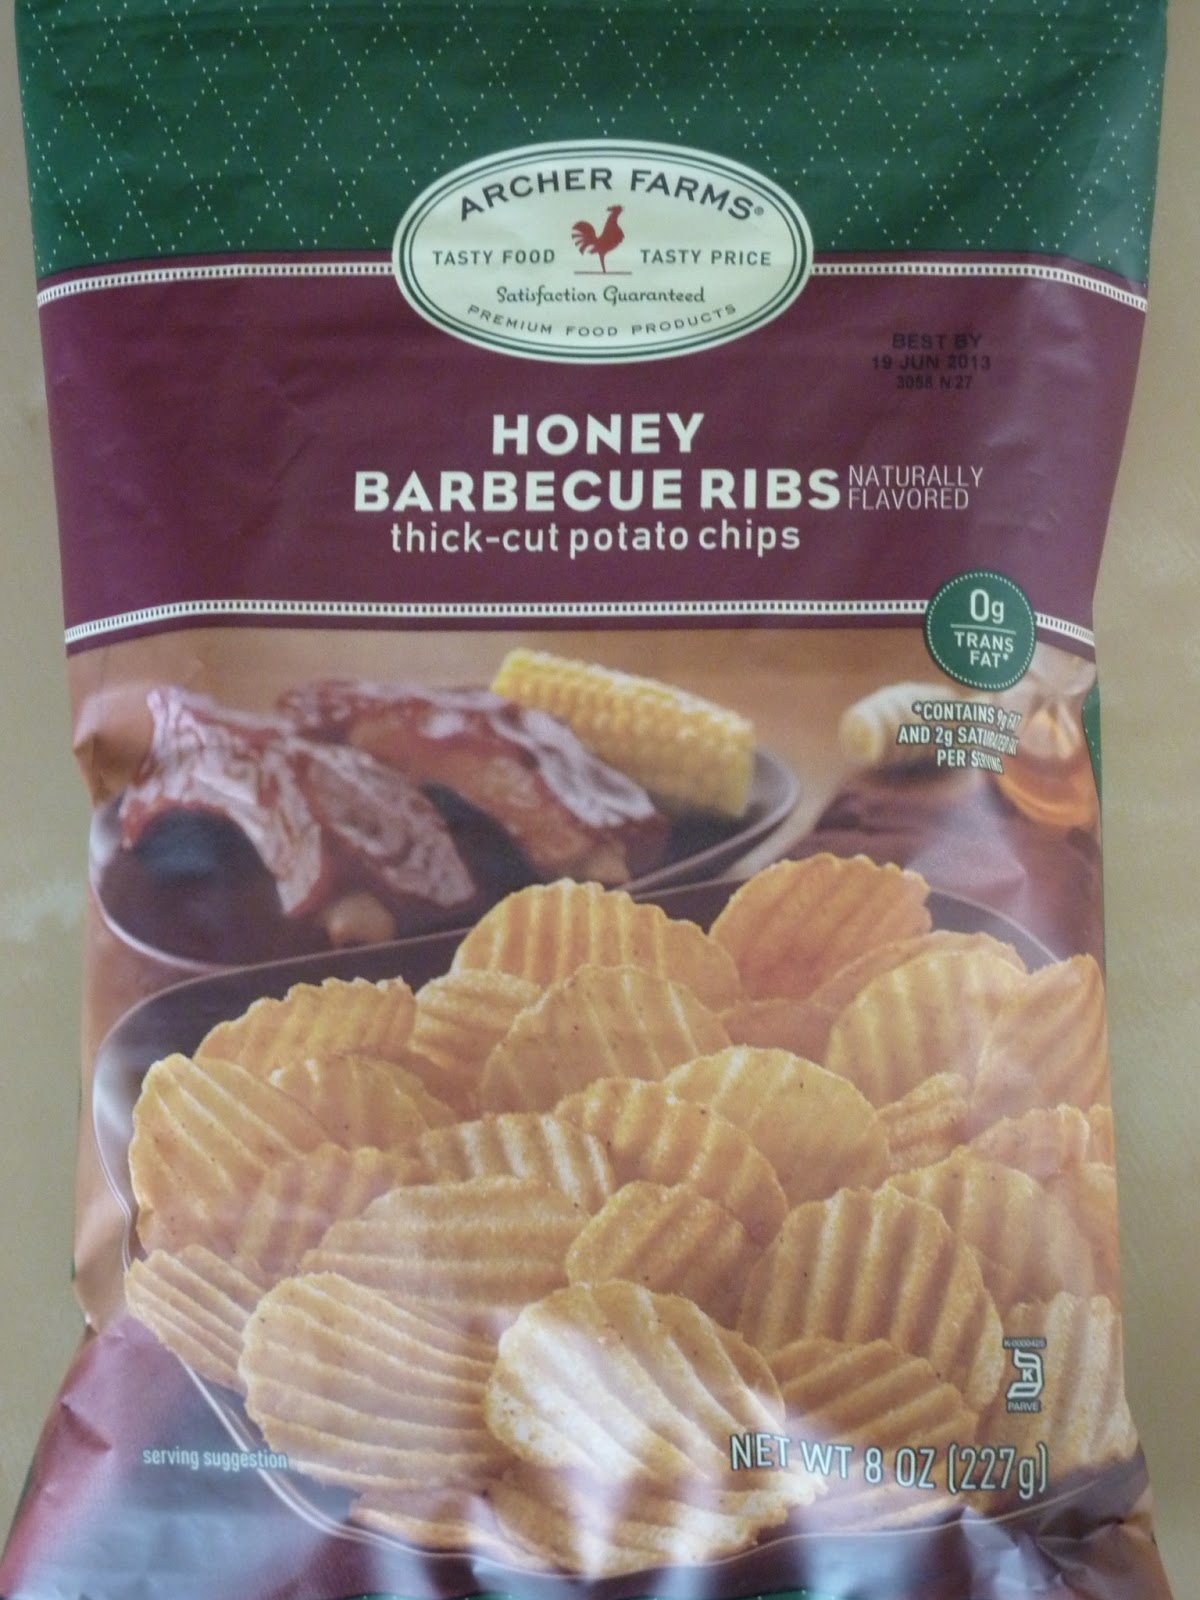 Barbecue Chips Honey Barbecue Ribs Chips